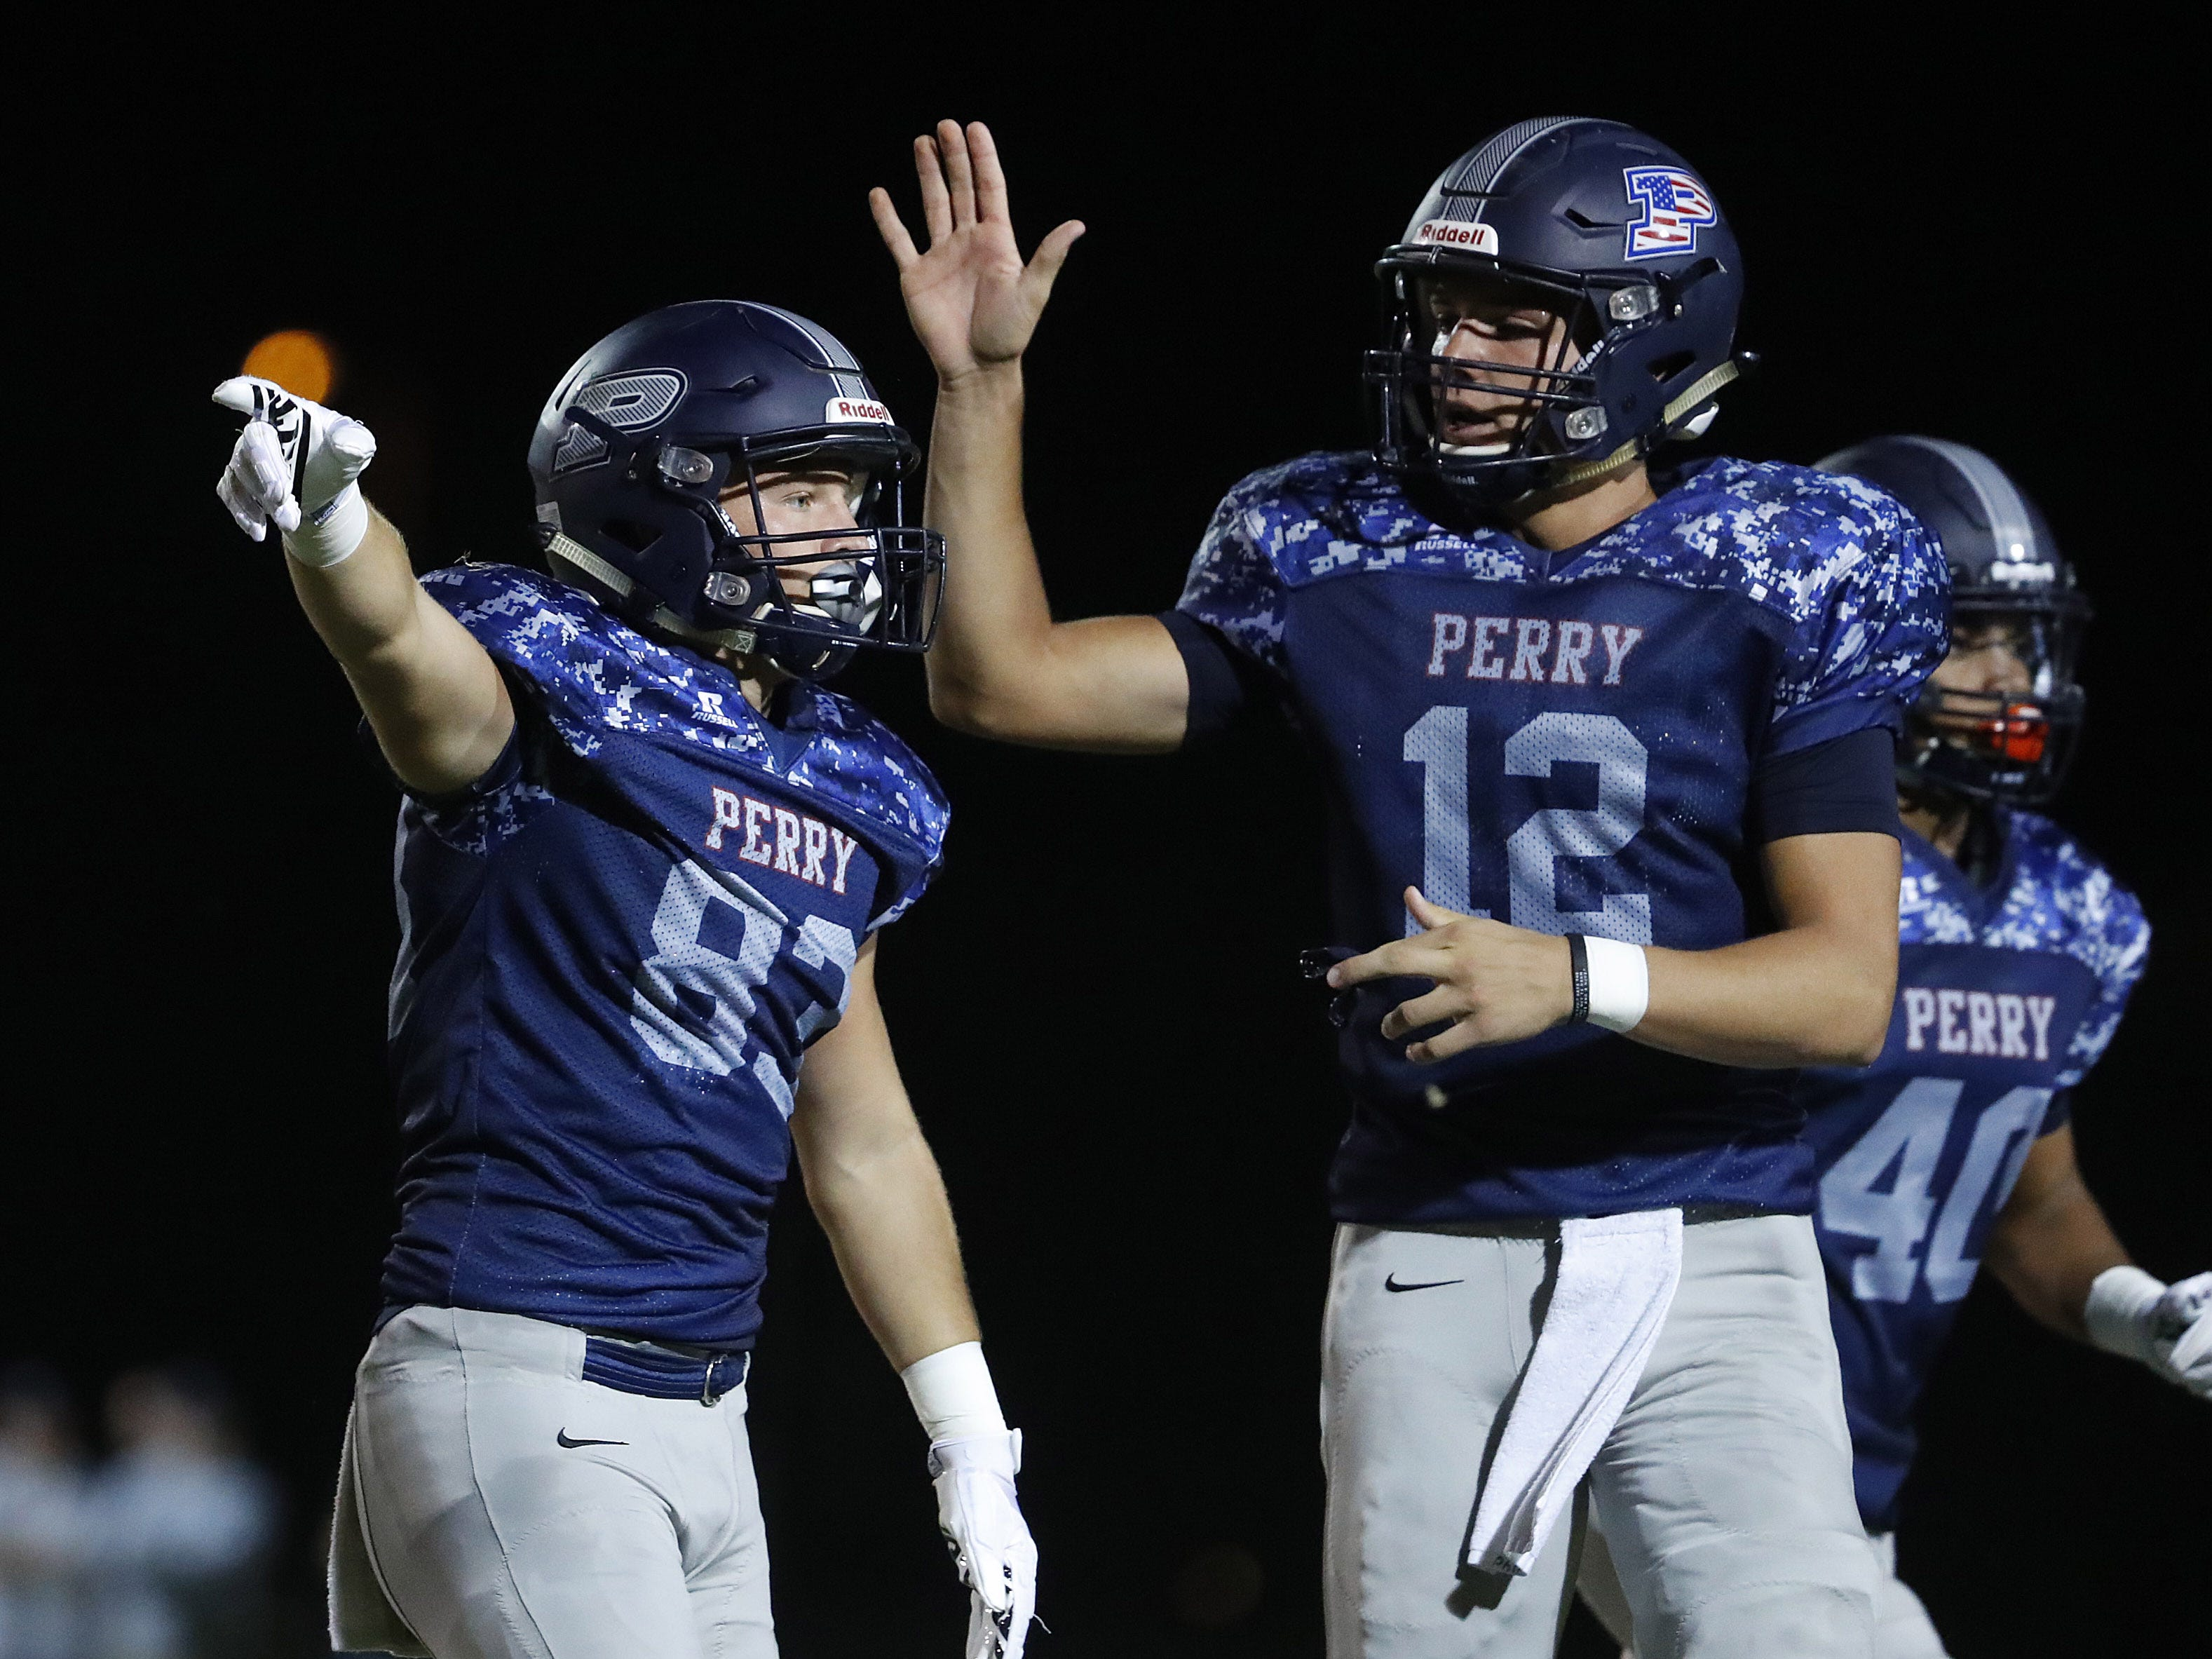 Perry's Connor Boyd (83) celebrates a first down with quarterback Chubba Purdy (12) at Perry High School in Gilbert, Ariz. on Sept. 28, 2018.  #azhsfb